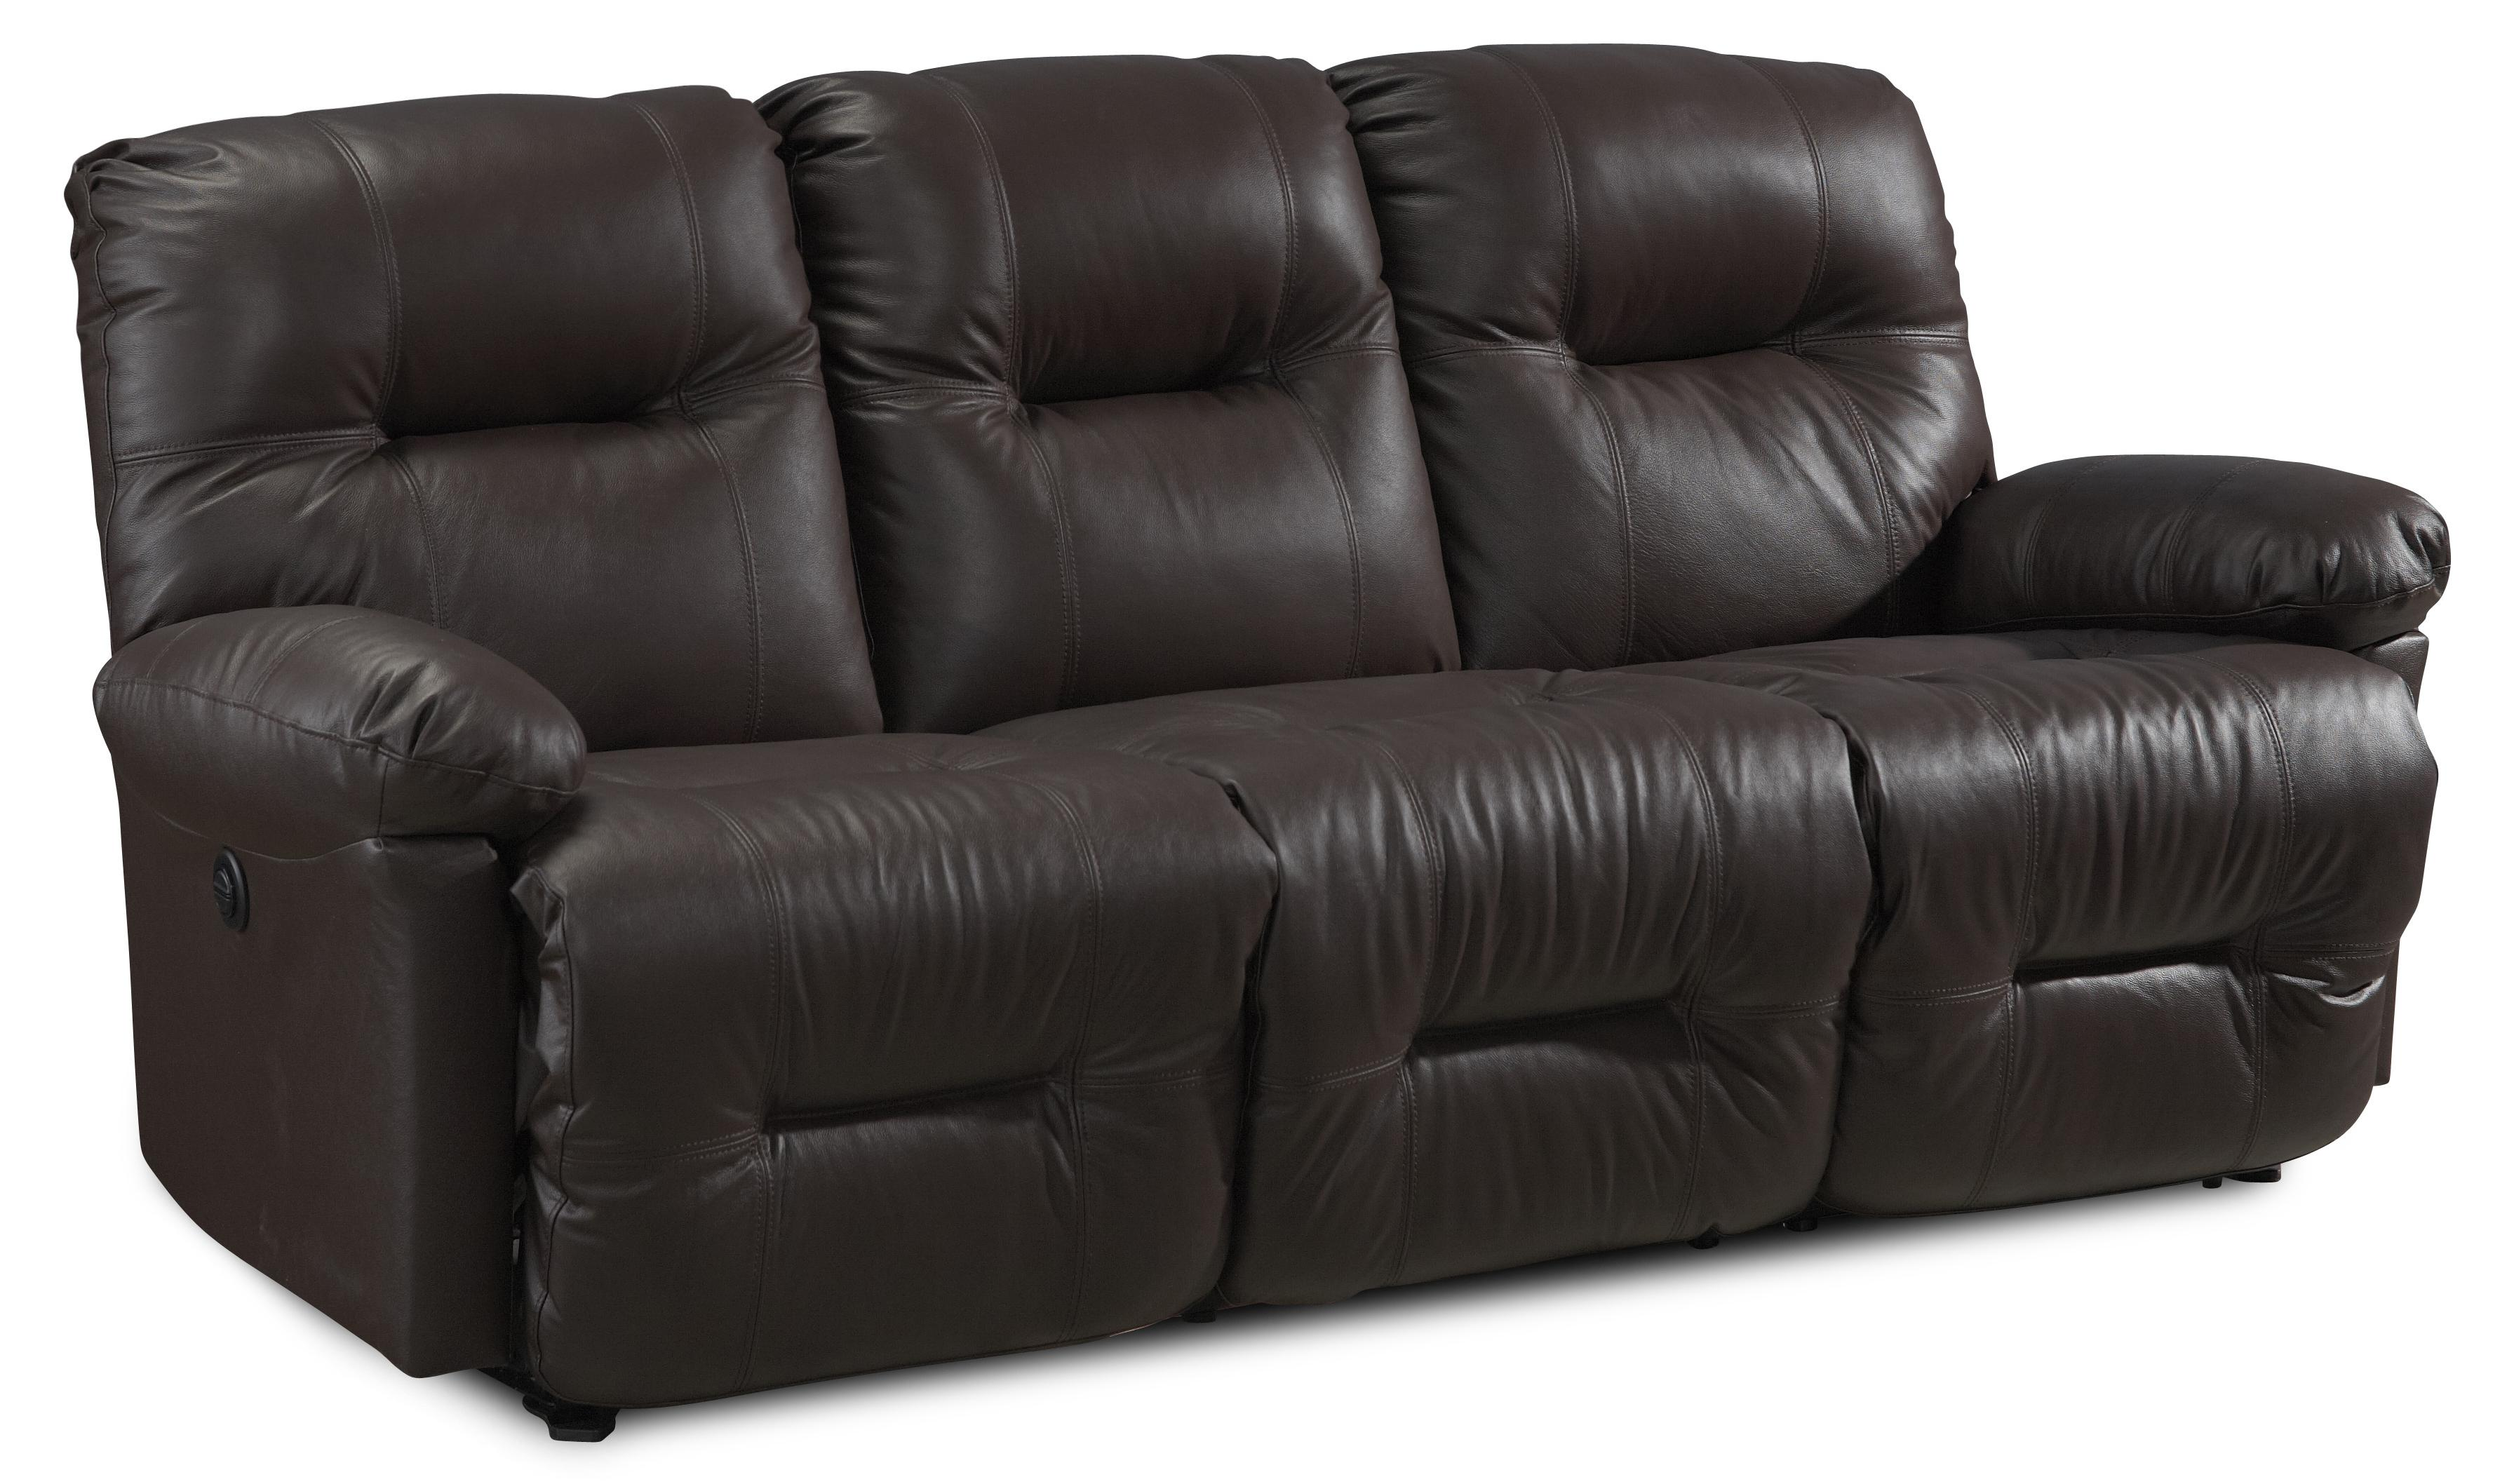 Best Home Furnishings S501 Zaynah Motion Sofa Item Number S501cp4